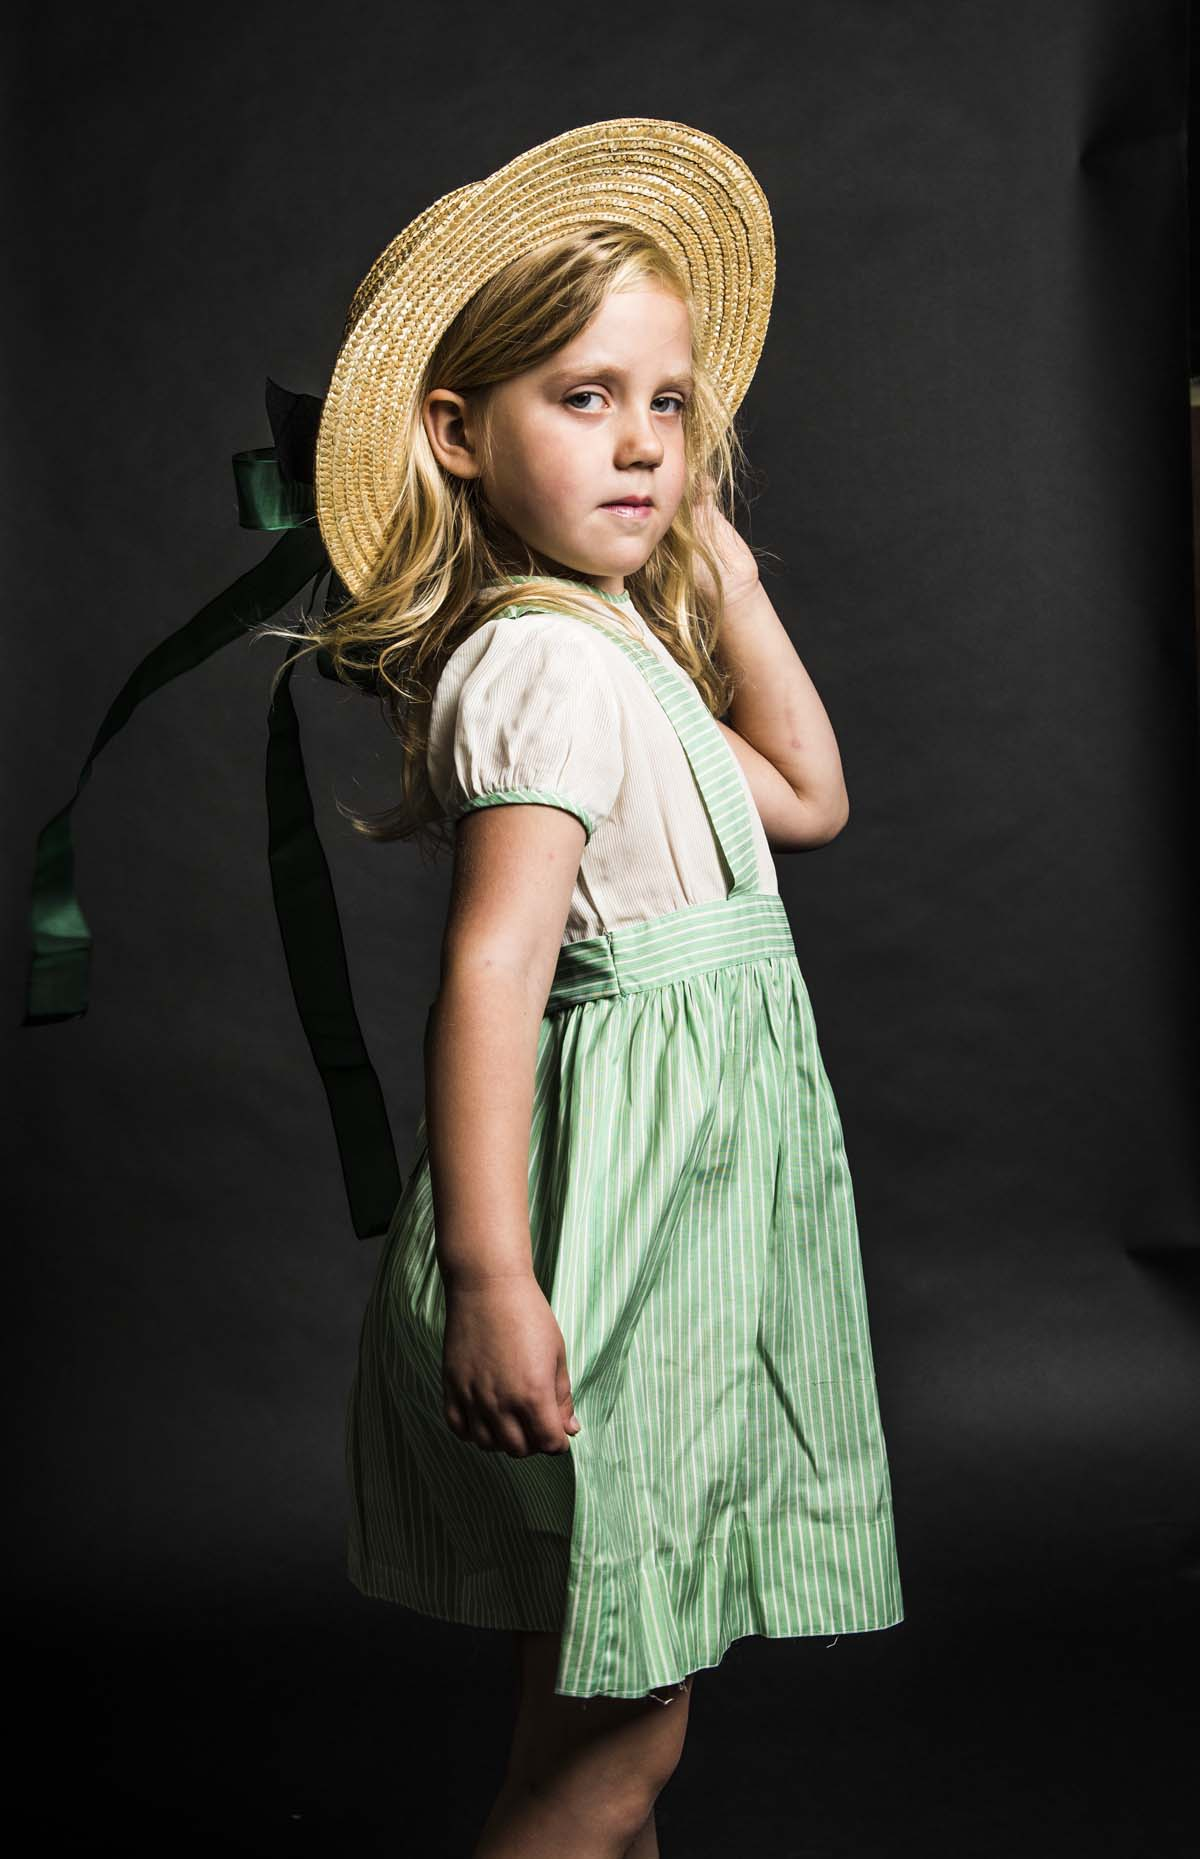 photo of a young girlwearing a straw hat and green dress and white blouse